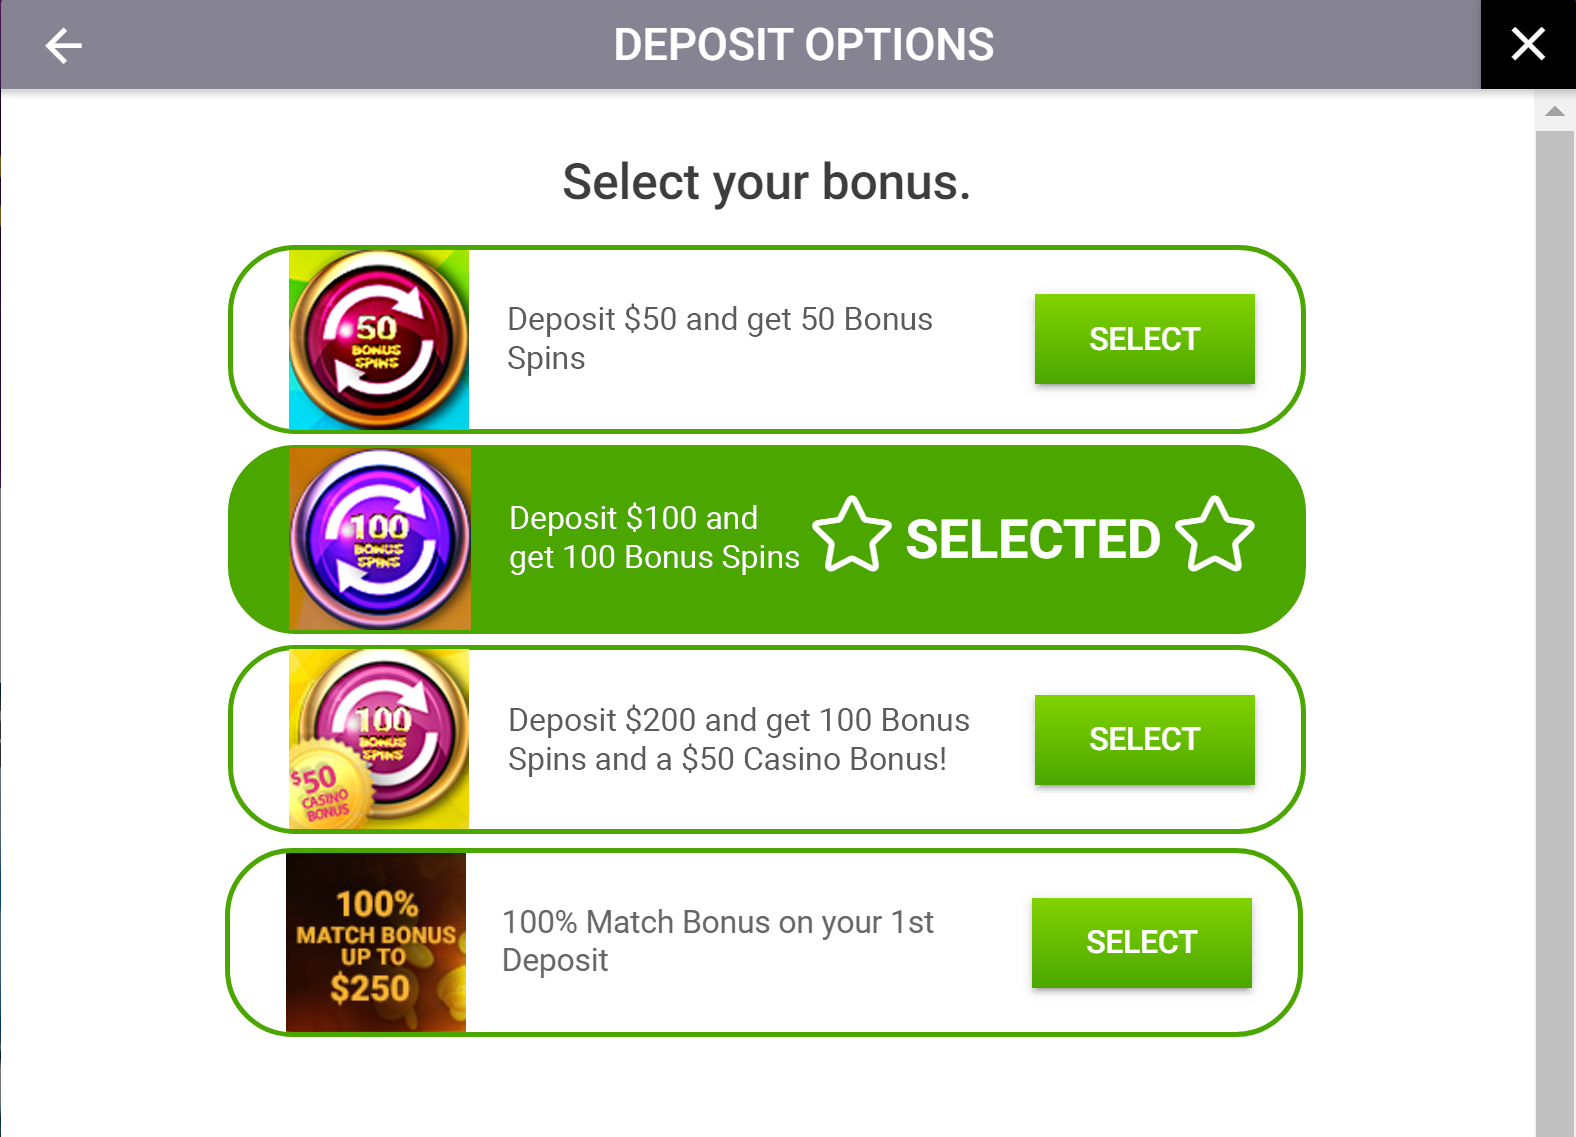 Deposit Options Window